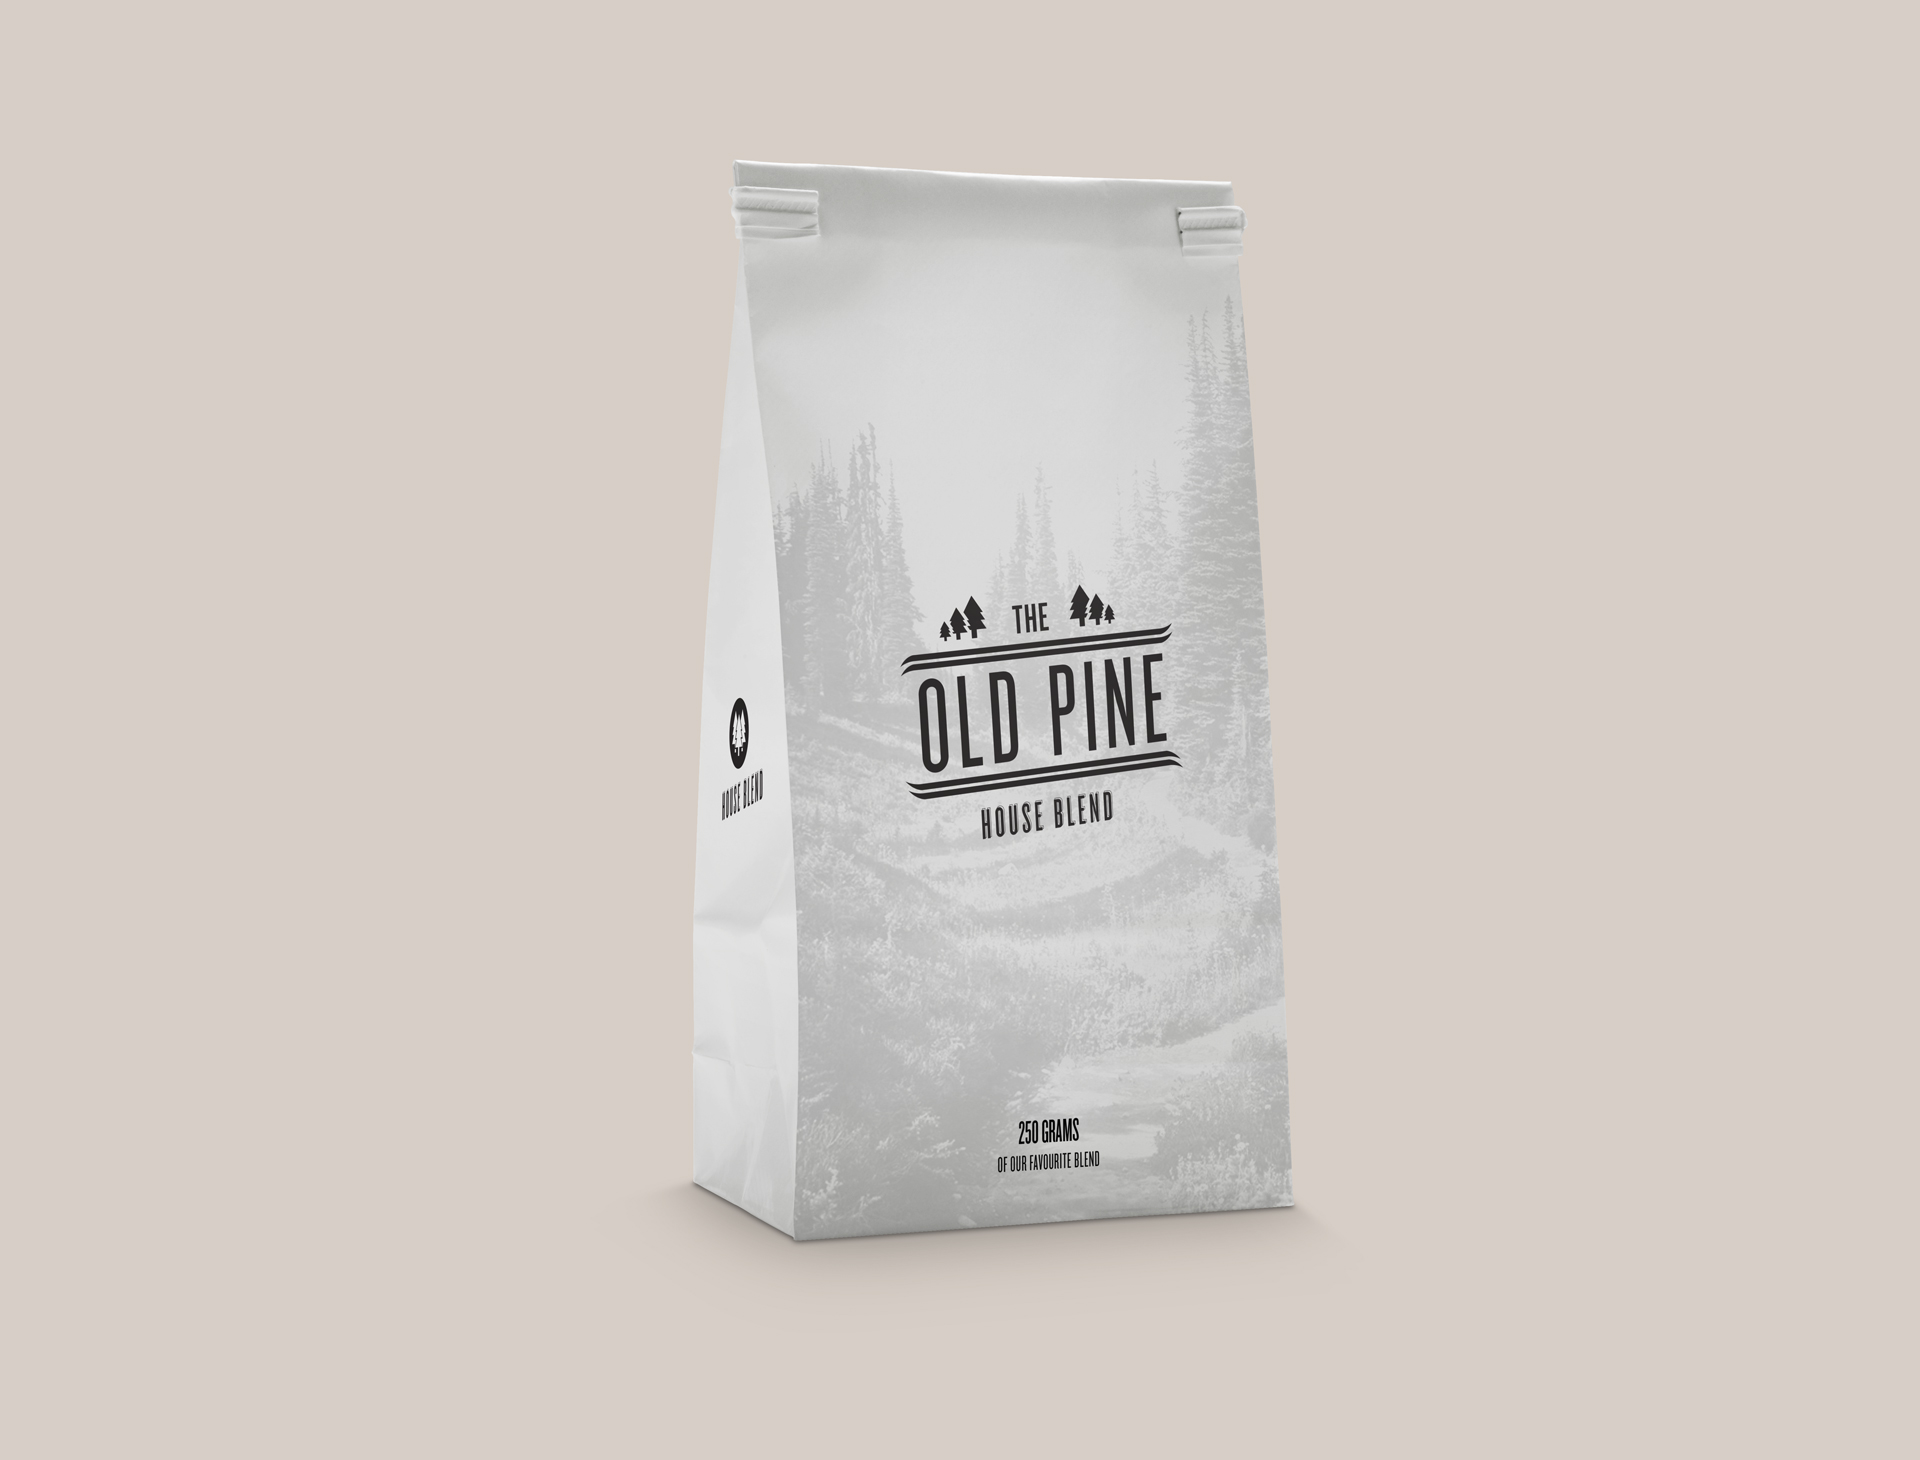 The Old Pine - House blend